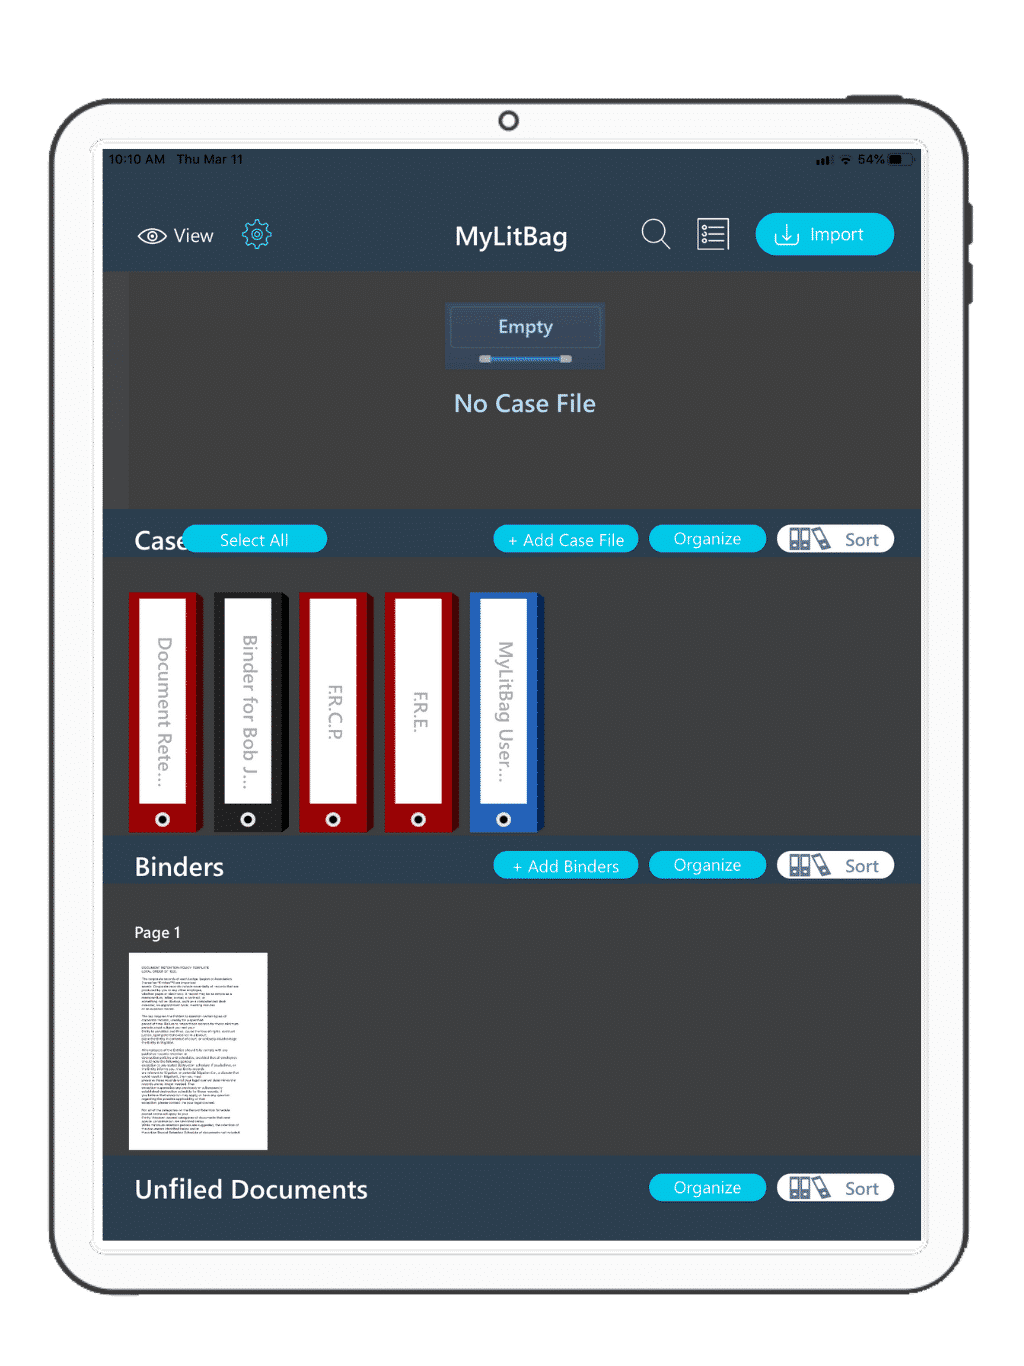 View, edit and rearrange your references, case files and binders right on your MyLitBag dashboard.